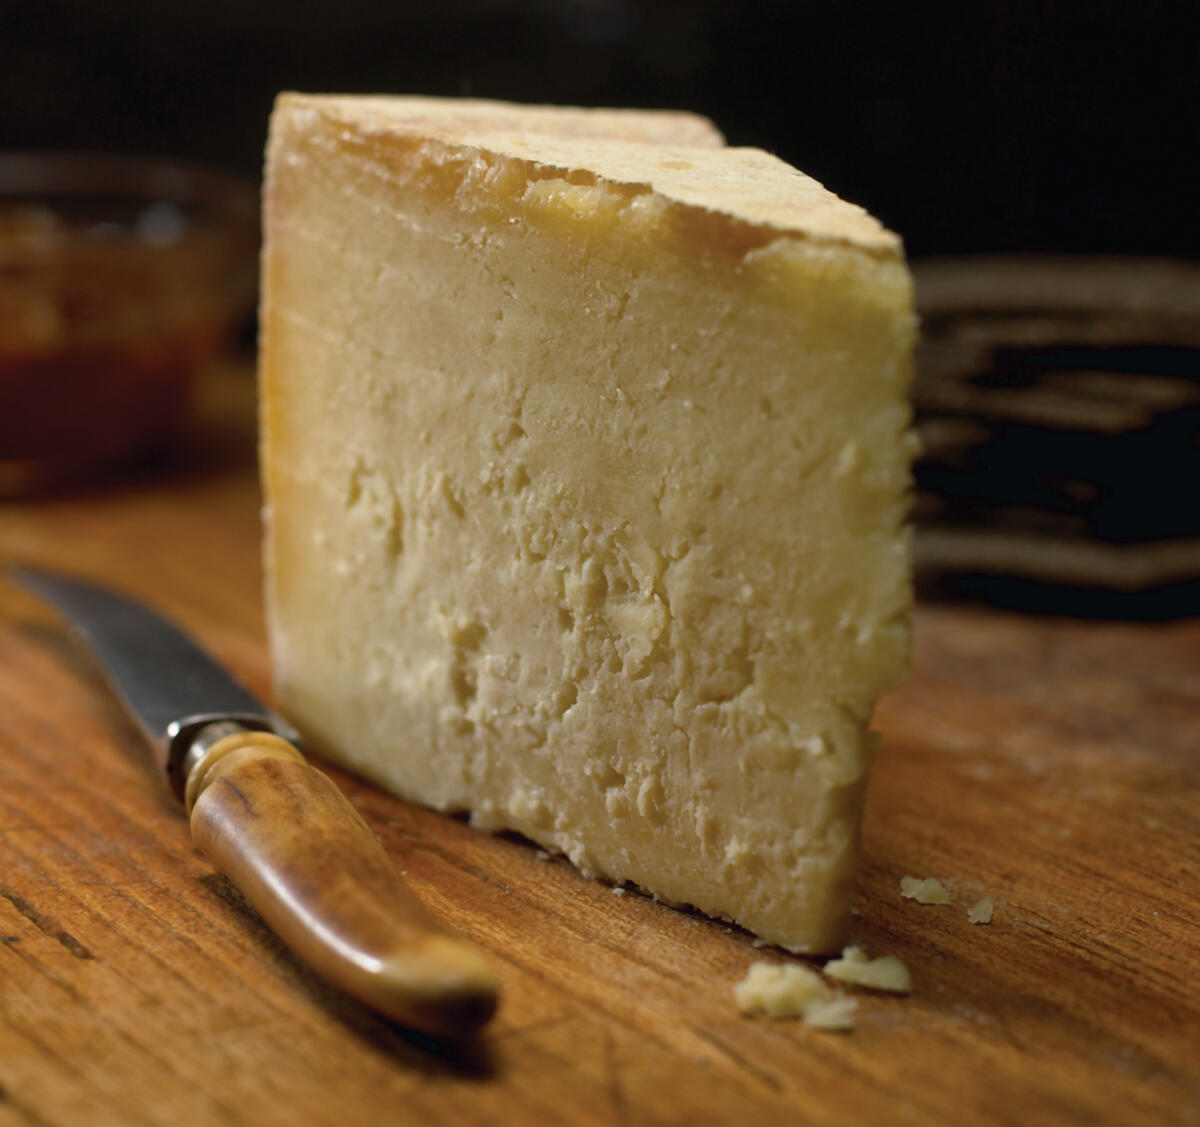 The History of our Kit Calvert Old-Style Wensleydale Cheese